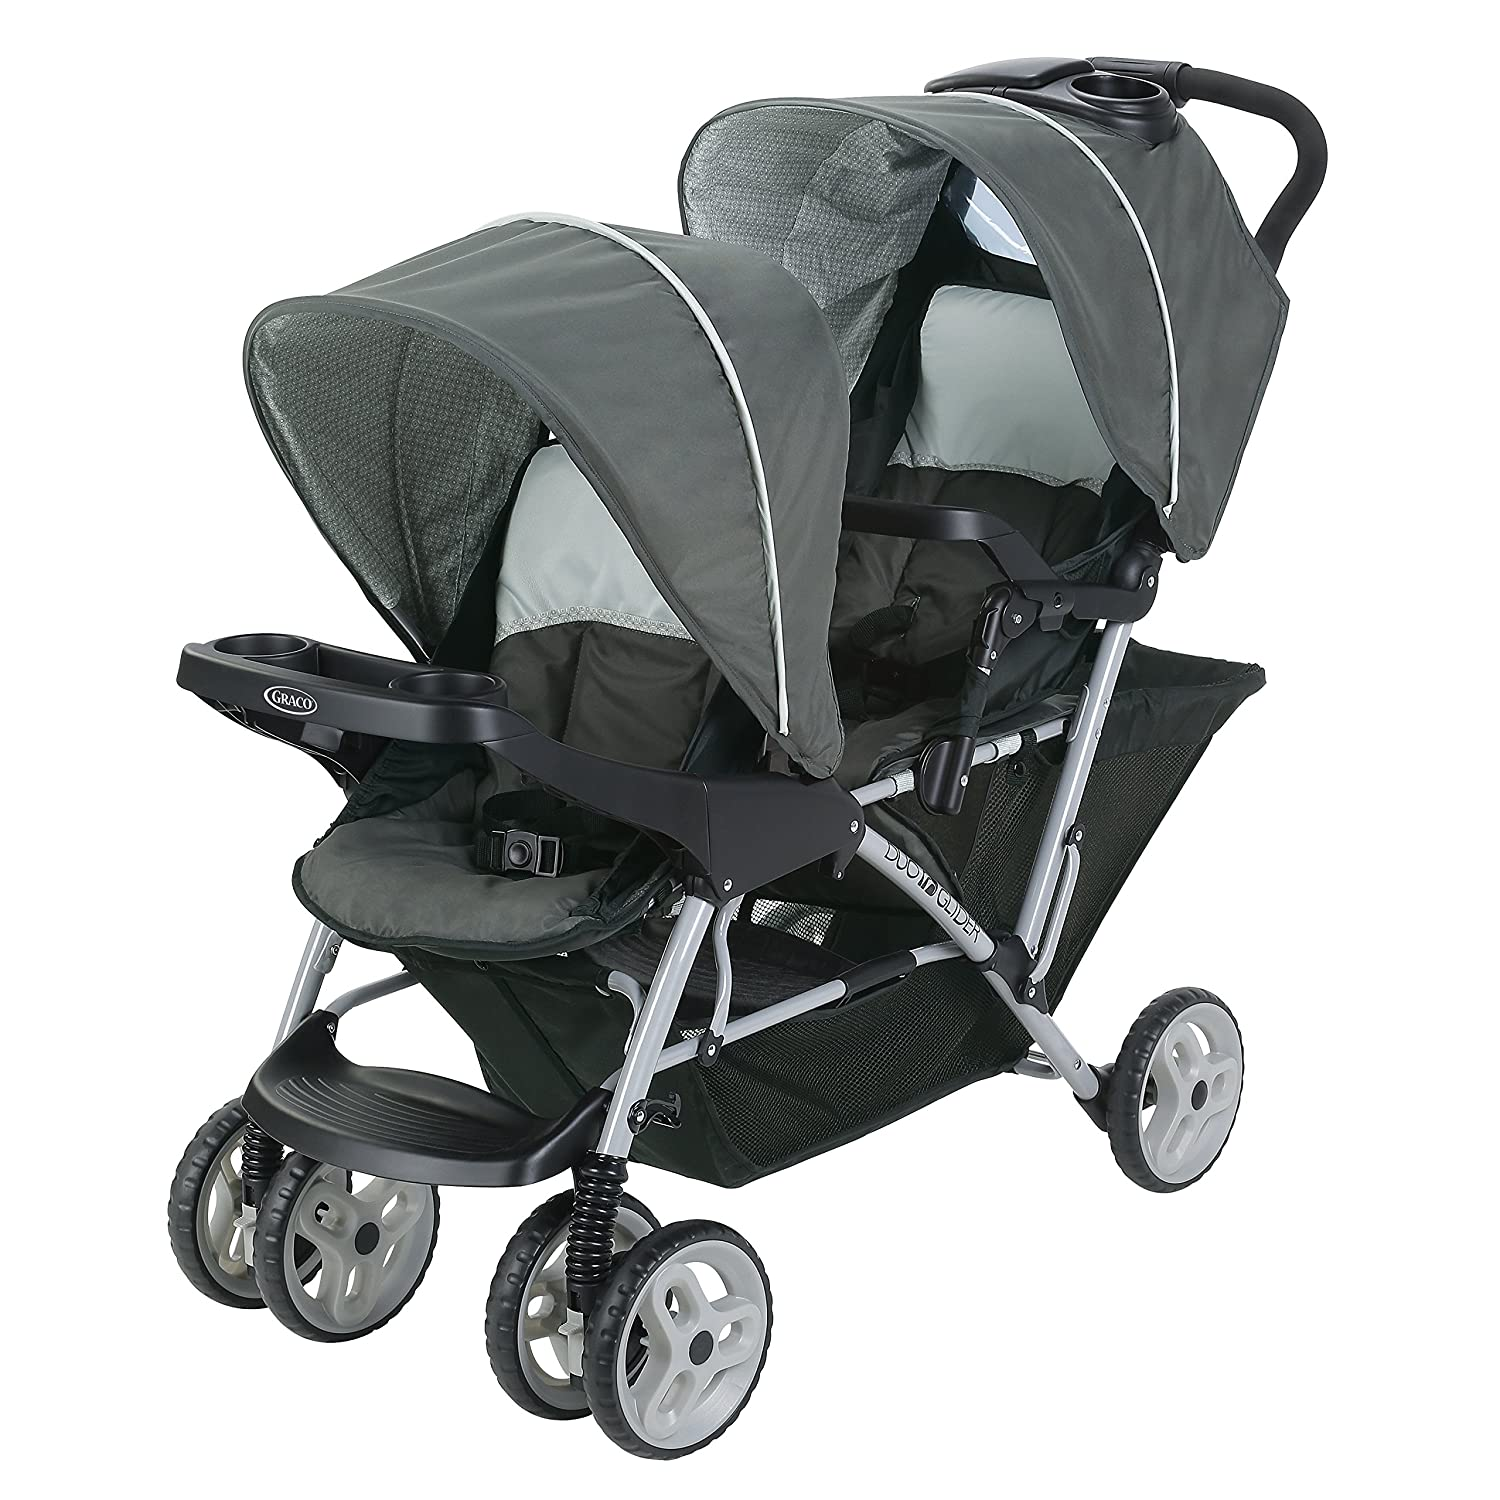 Graco duo glider double stroller, lightweight